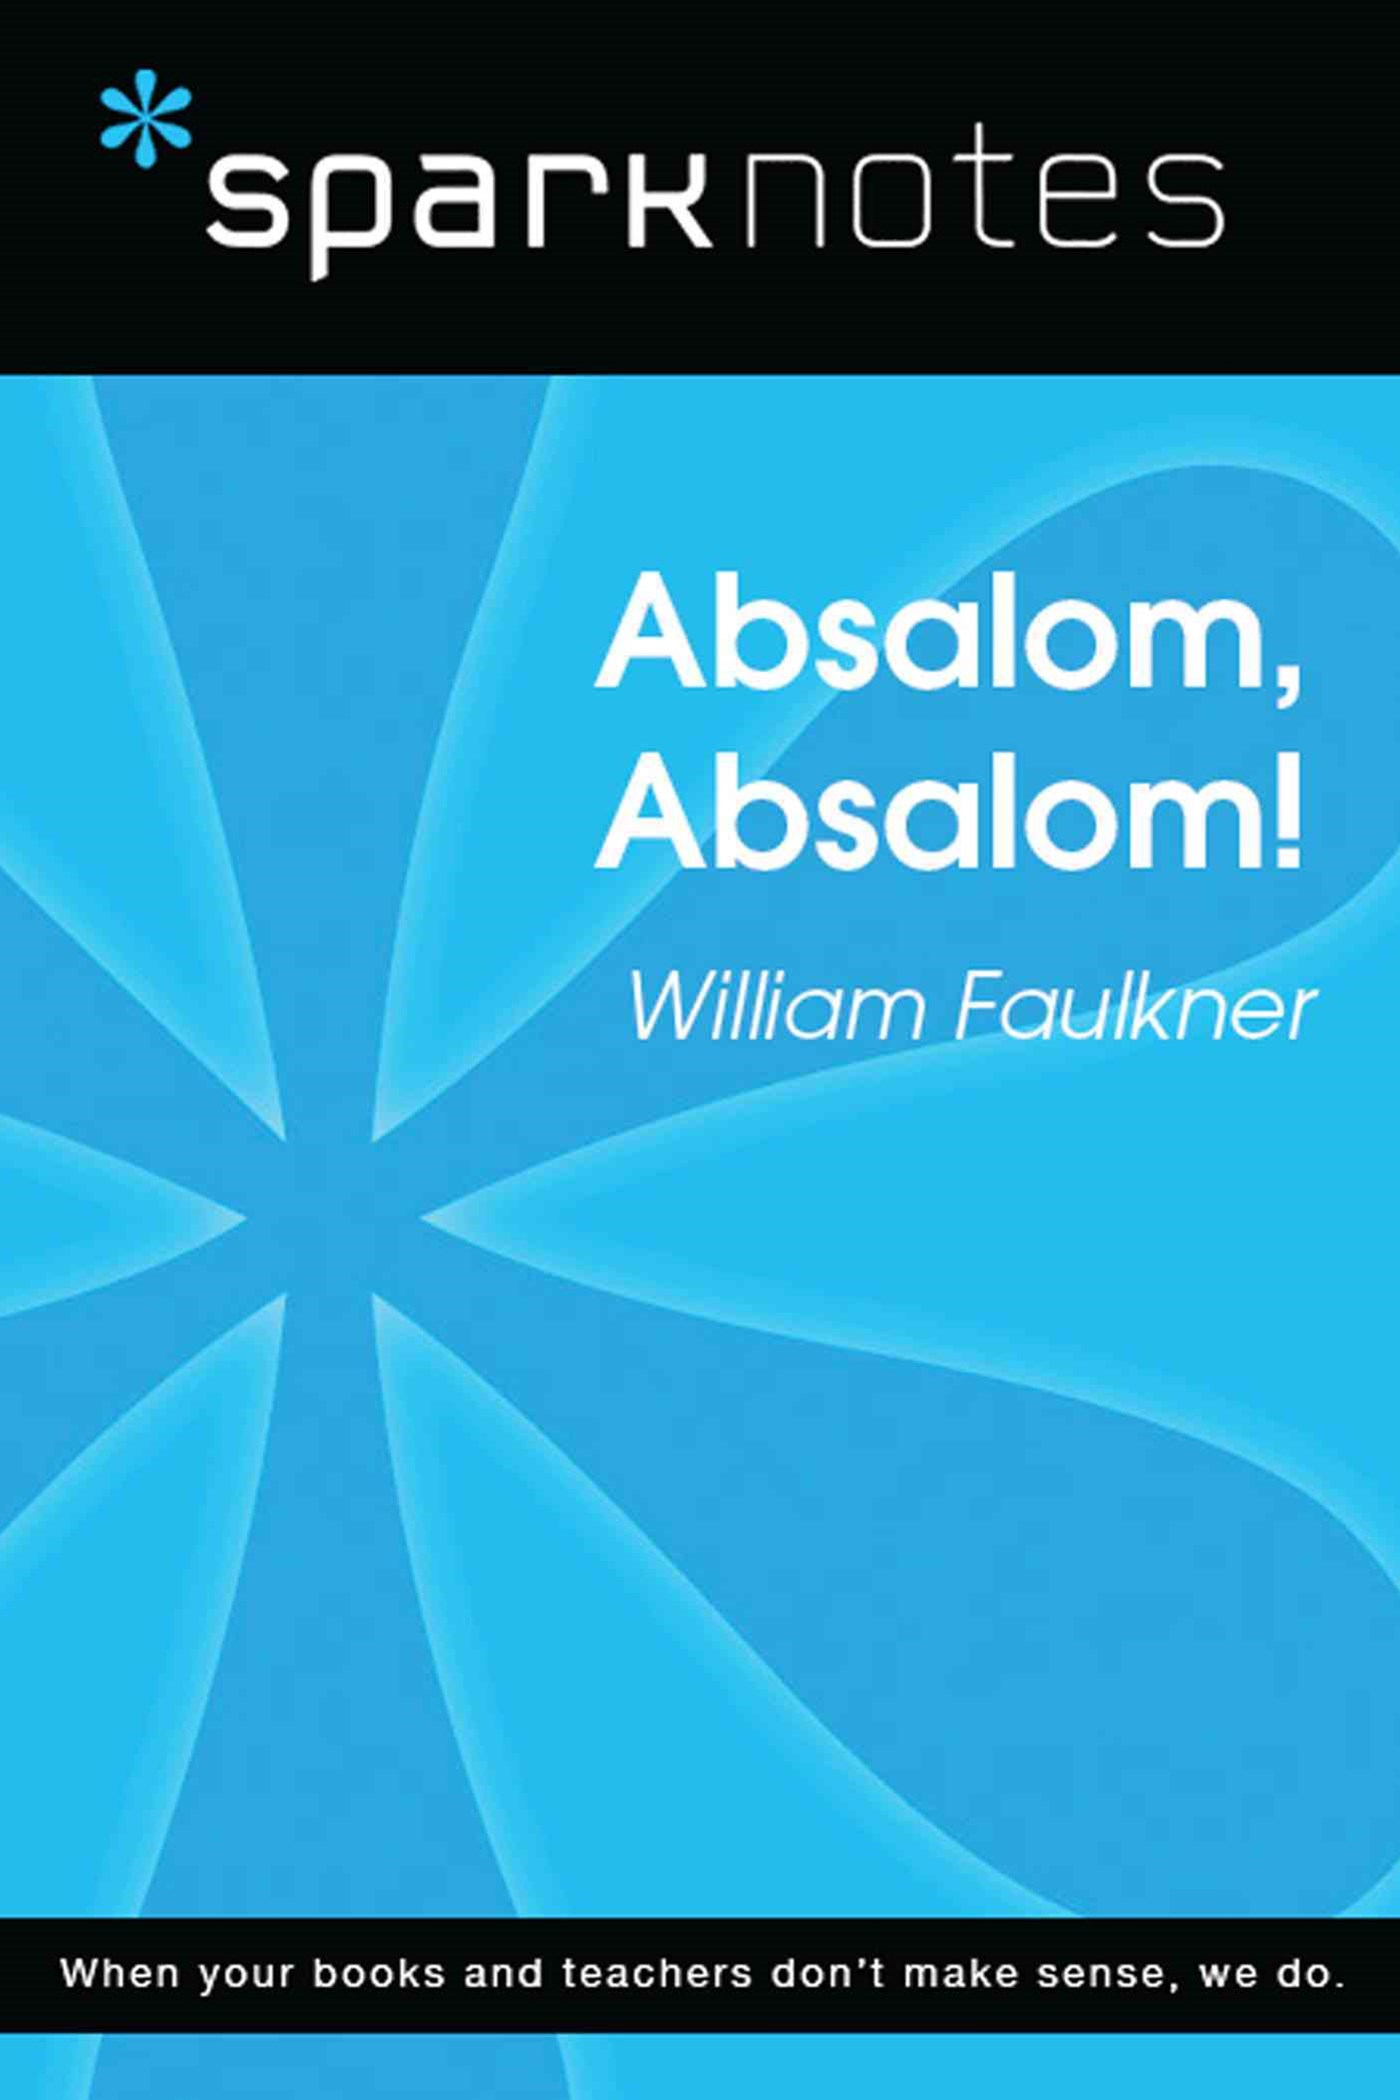 Absalom, Absalom! (SparkNotes Literature Guide)